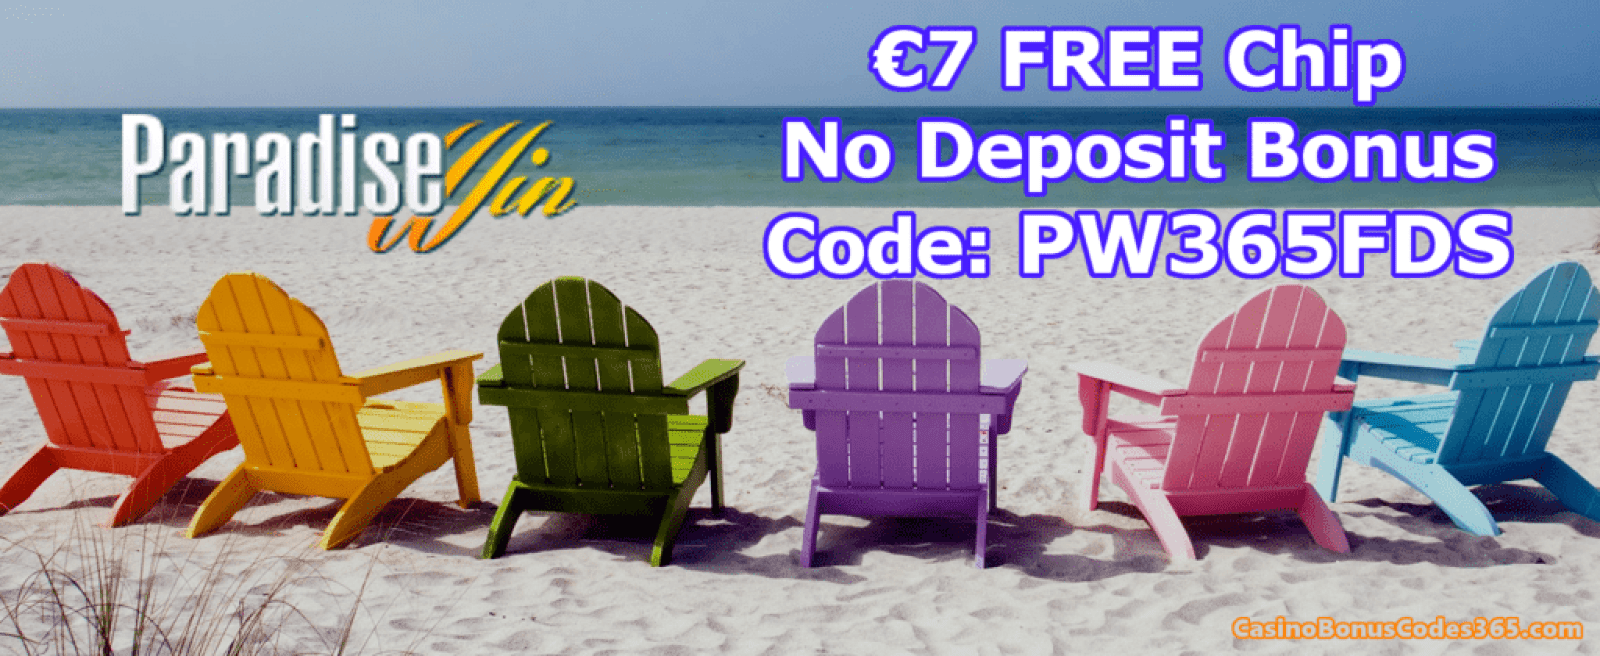 Paradise Win Casino Exclusive €7 FREE Chips March Promo